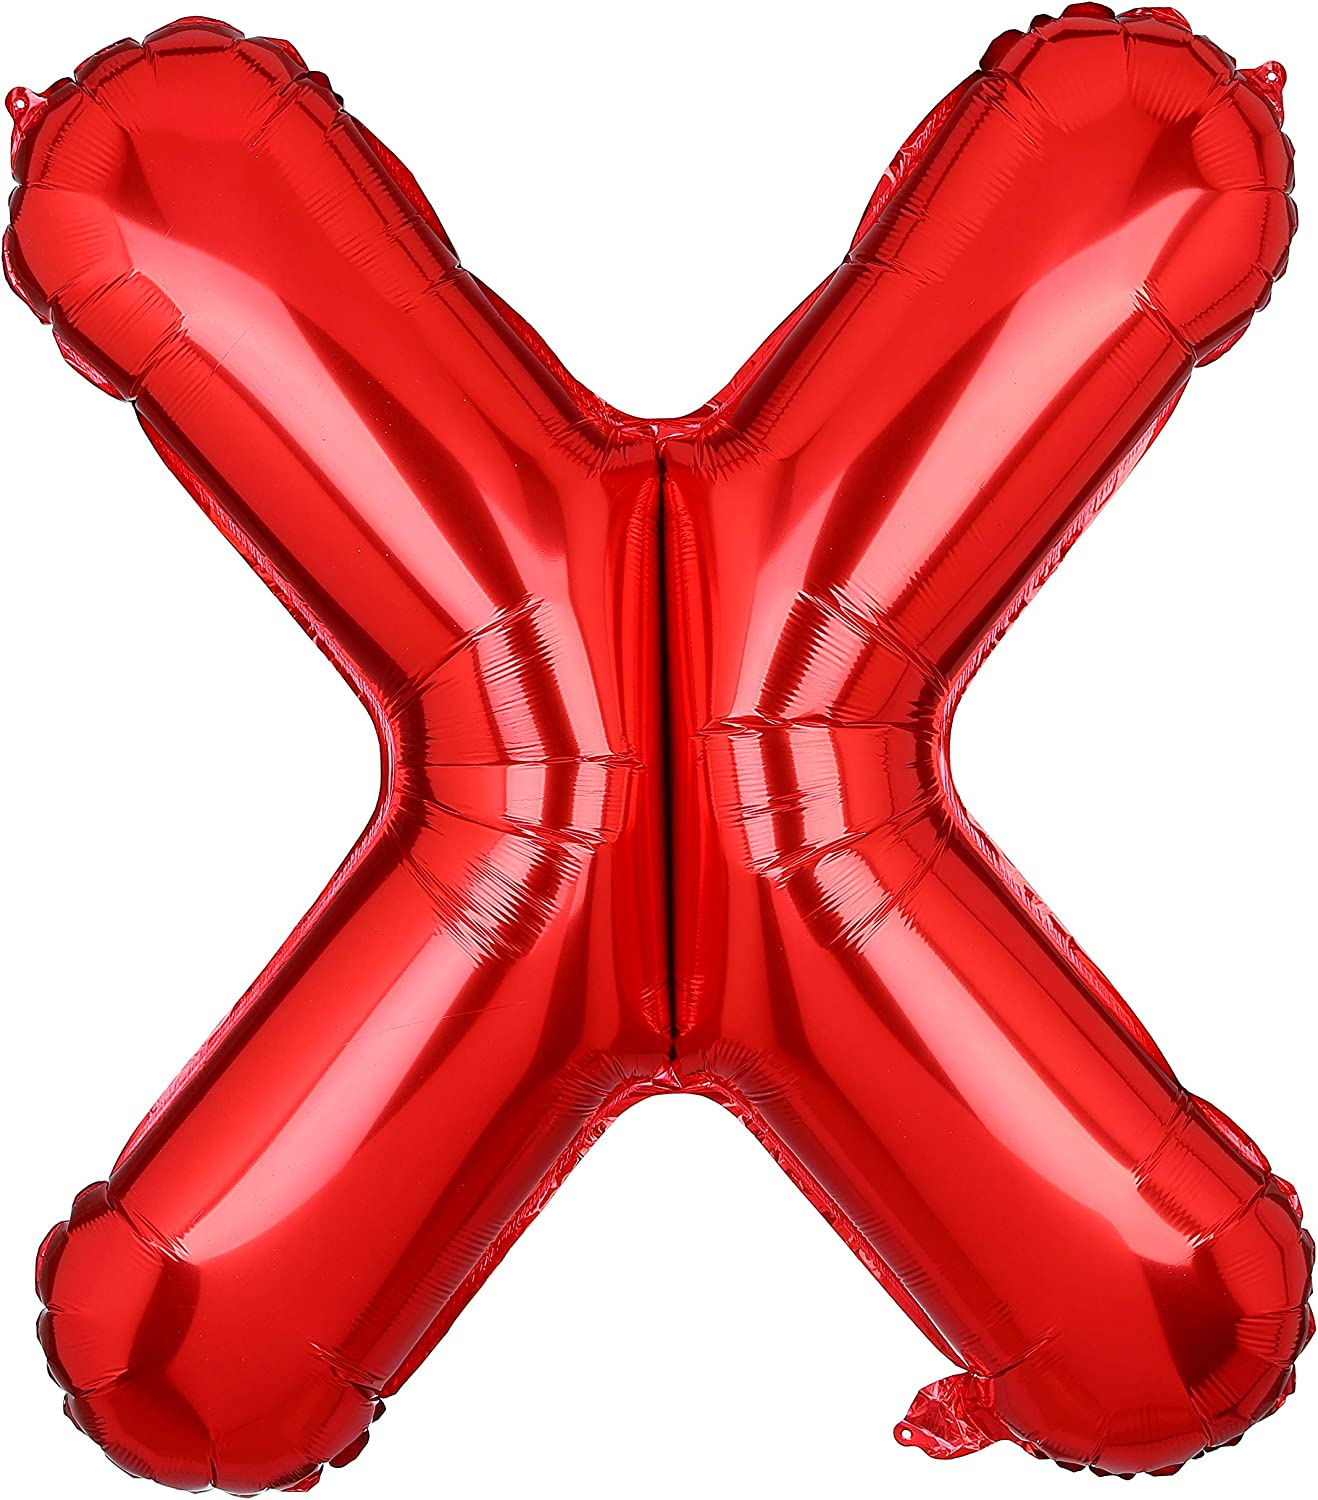 40 Inch Large Letter X Foil Balloons Red Alphabet Mylar Balloon for Birthday Party Decoration Wedding Decor Girls HH(Red-X)